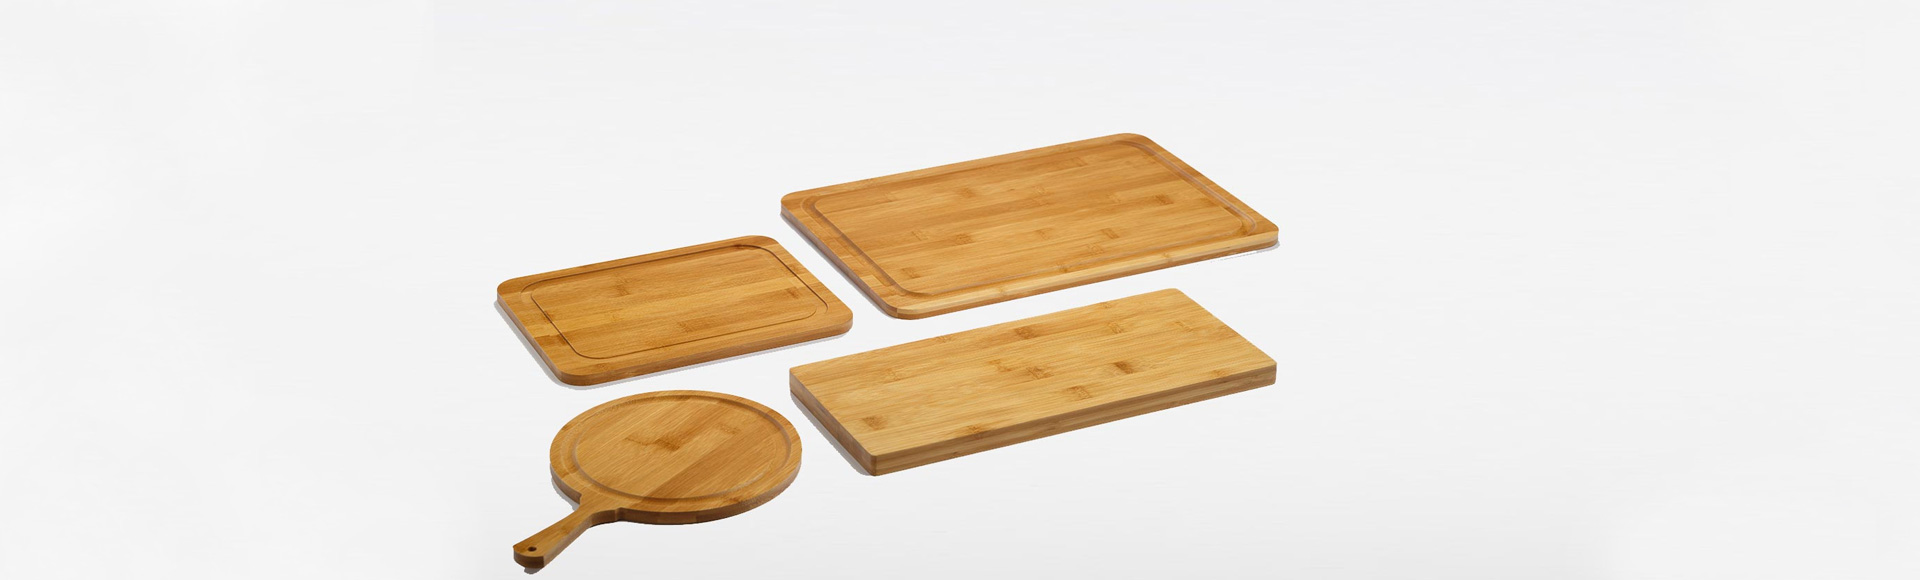 Wood chopping boards from Timber Concept